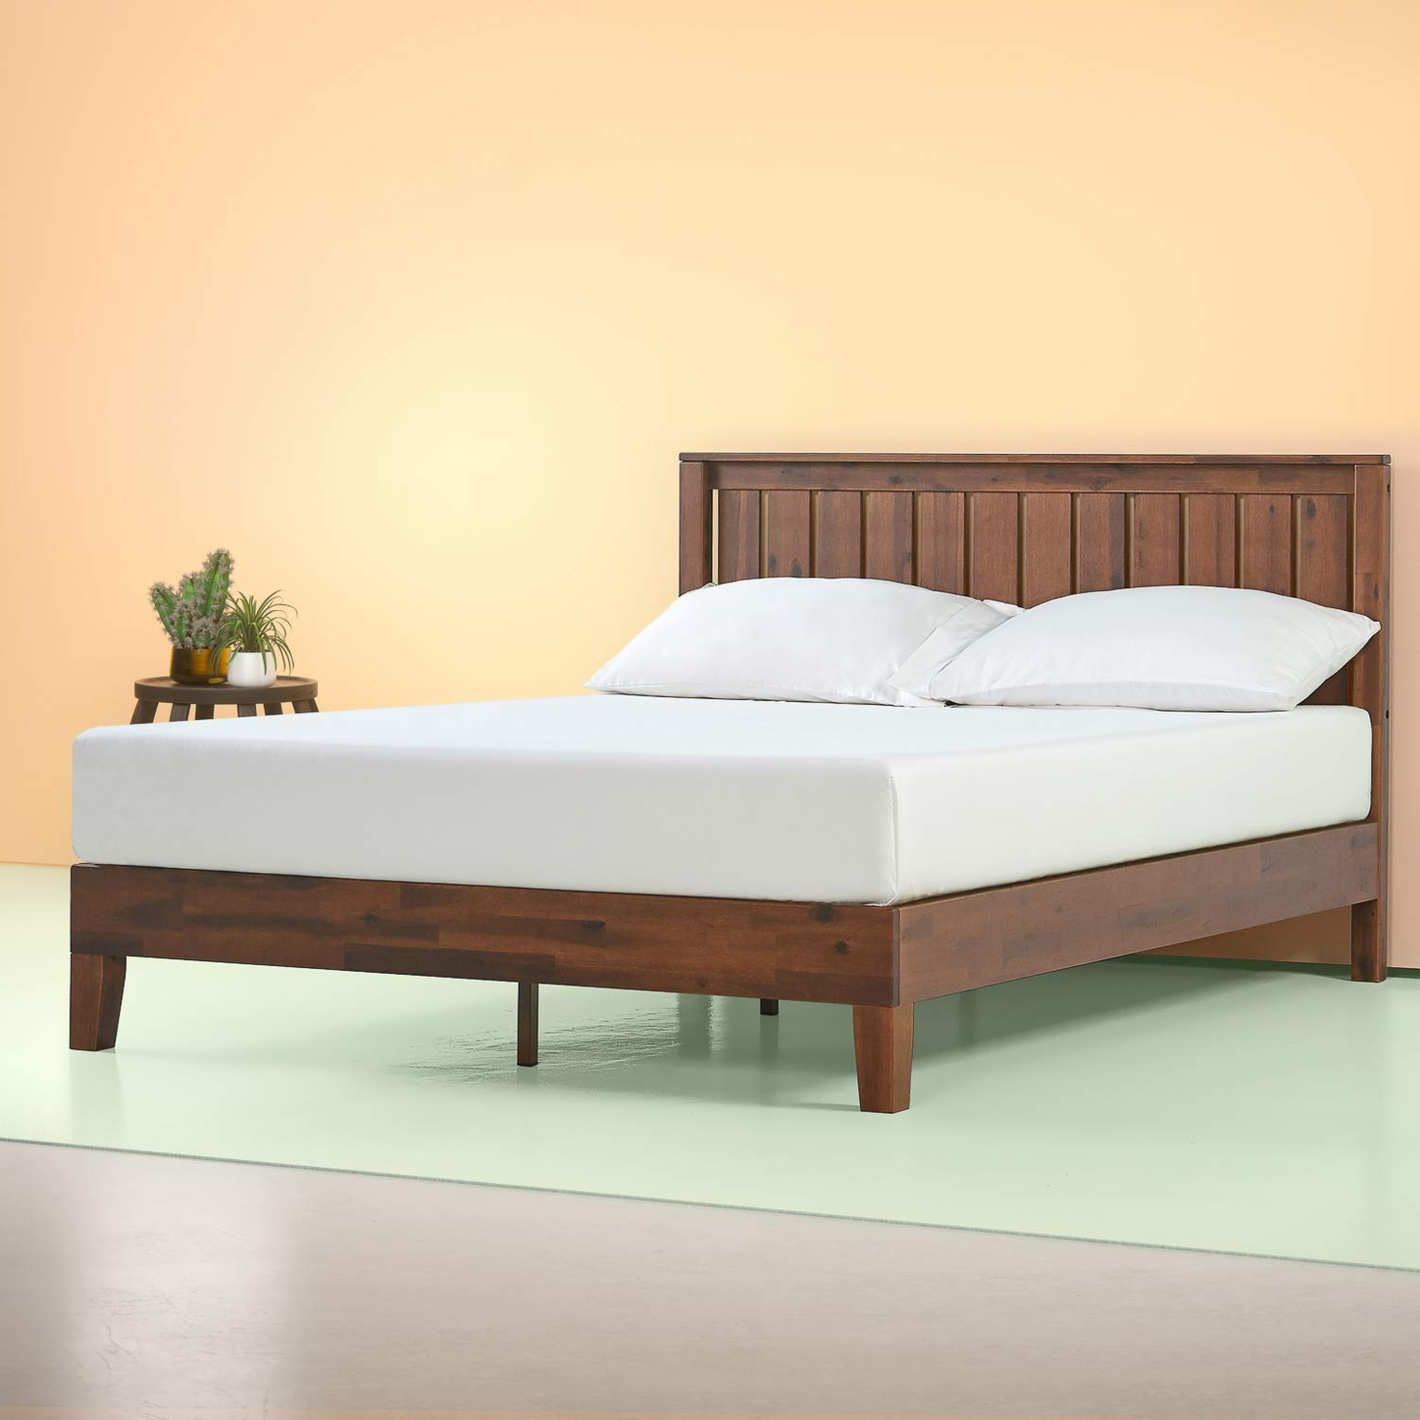 The Best Platform Beds On Amazon According To Hyperenthusiastic Reviewers Solid Wood Platform Bed Headboards For Beds Best Platform Beds